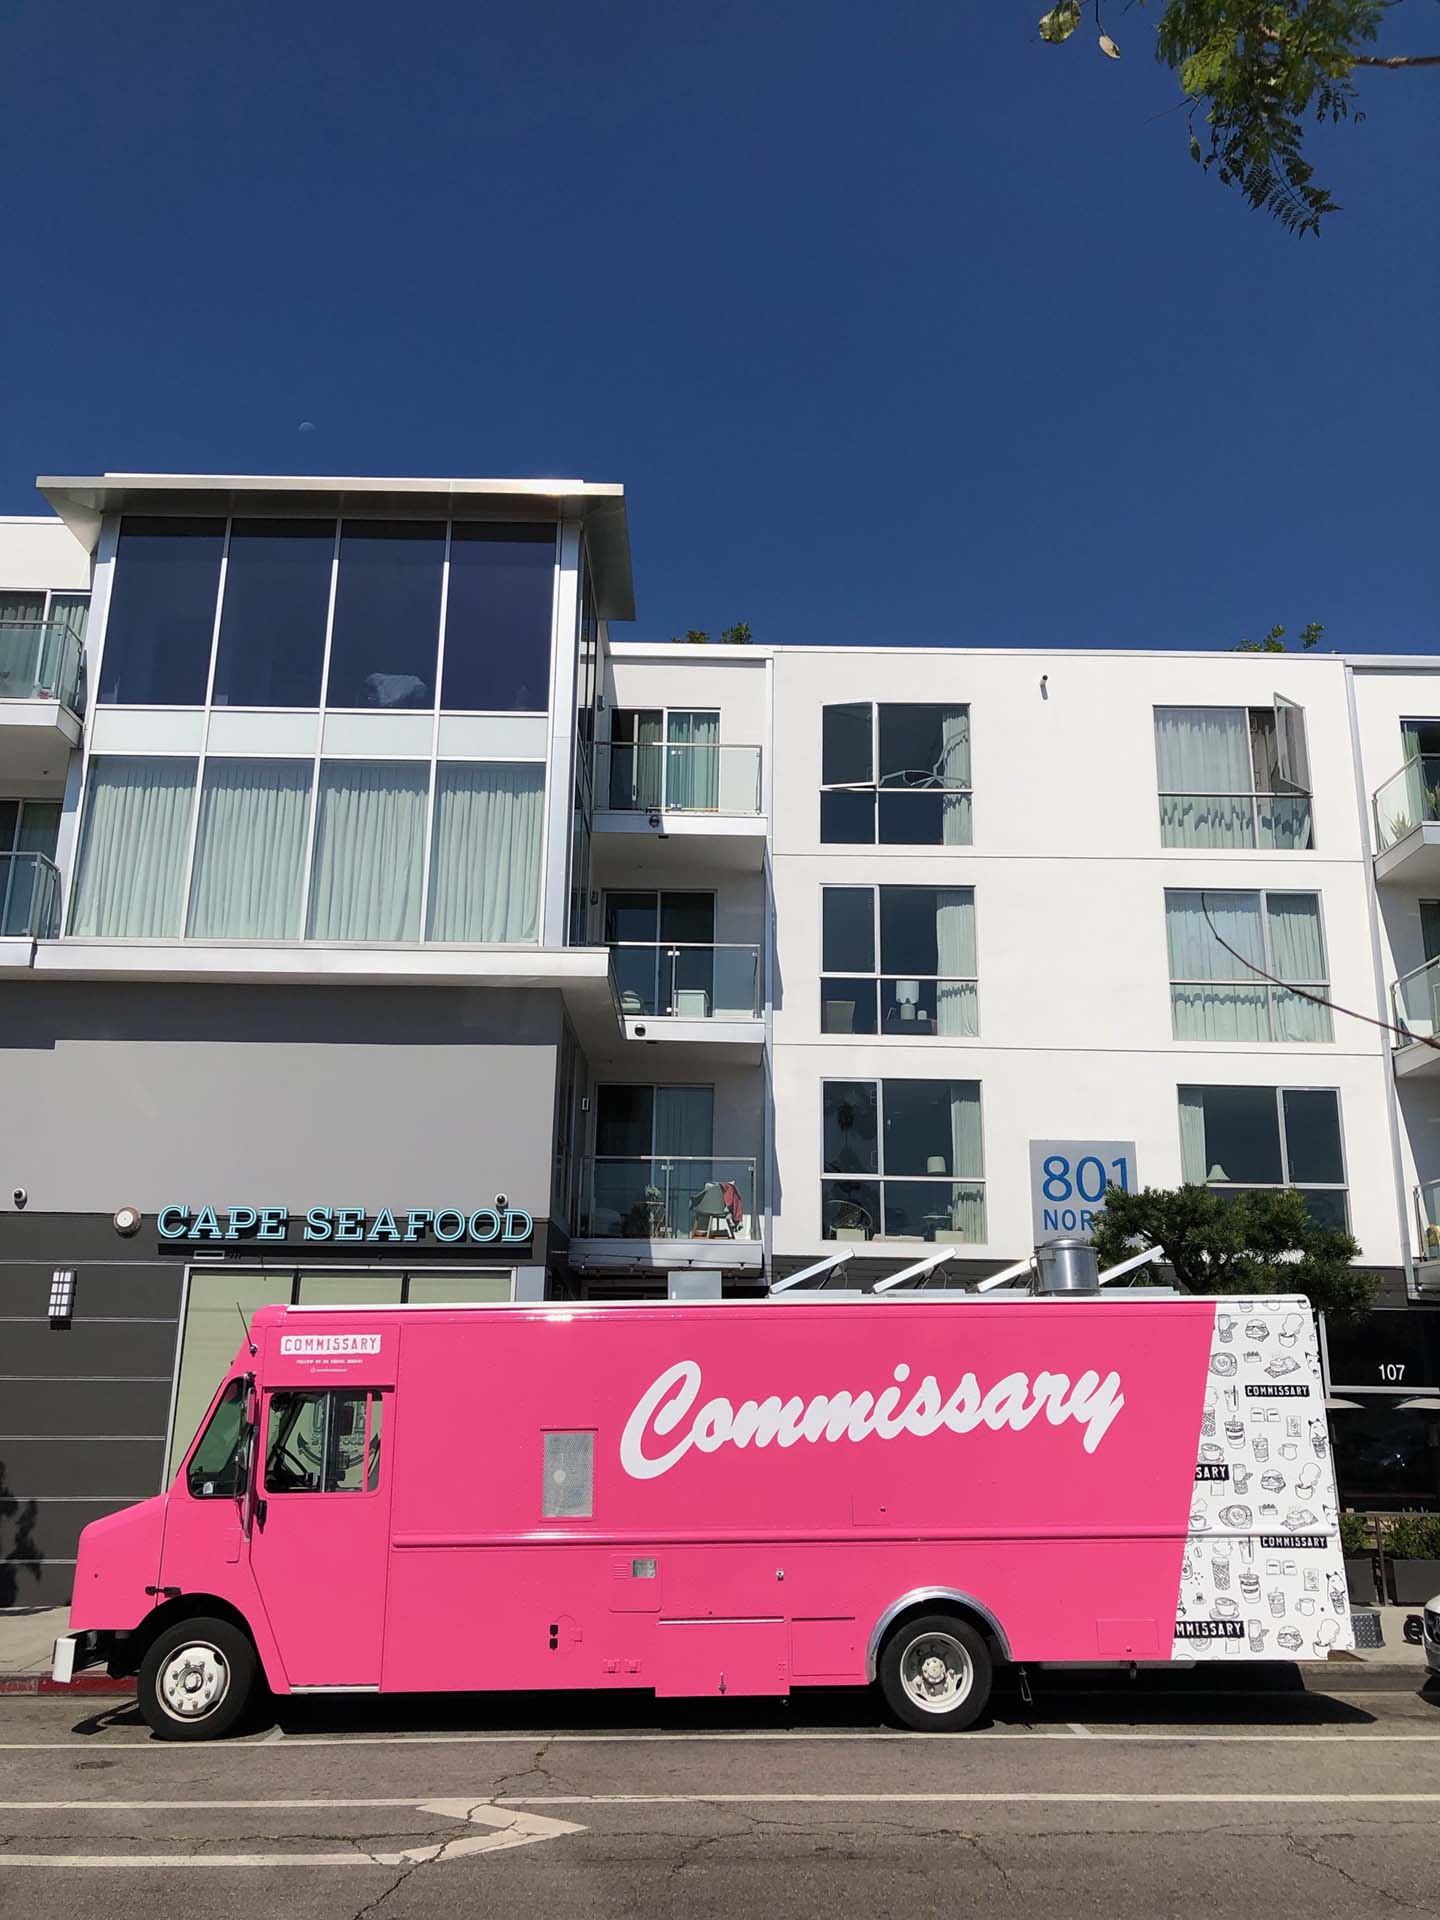 Coffee Commissary food truck